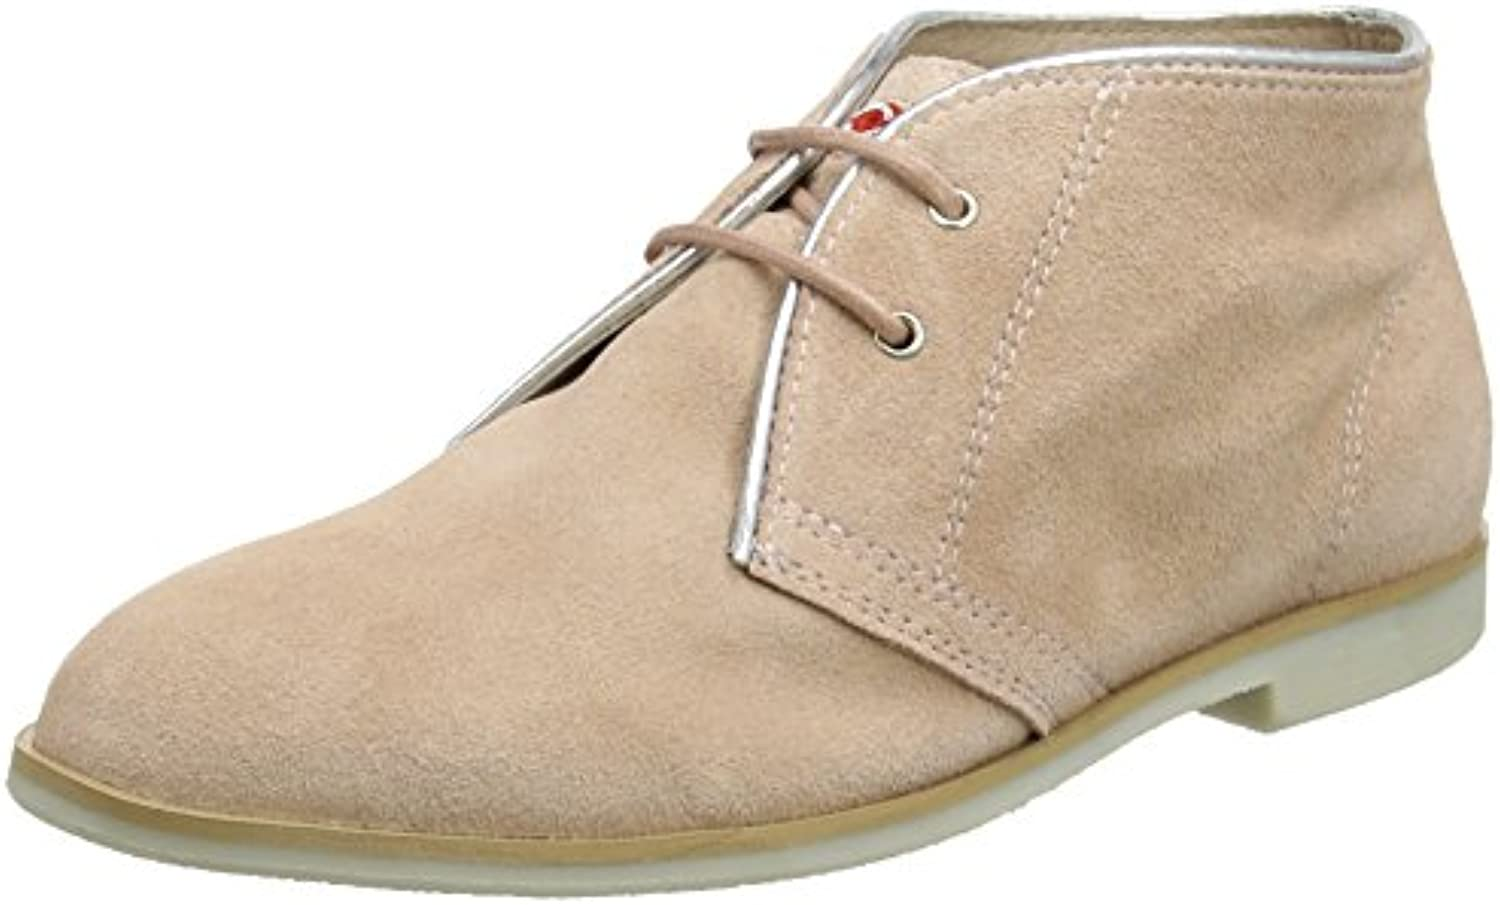 Chilly Femme Homme Chukka Nobrand Boots 7gw46n